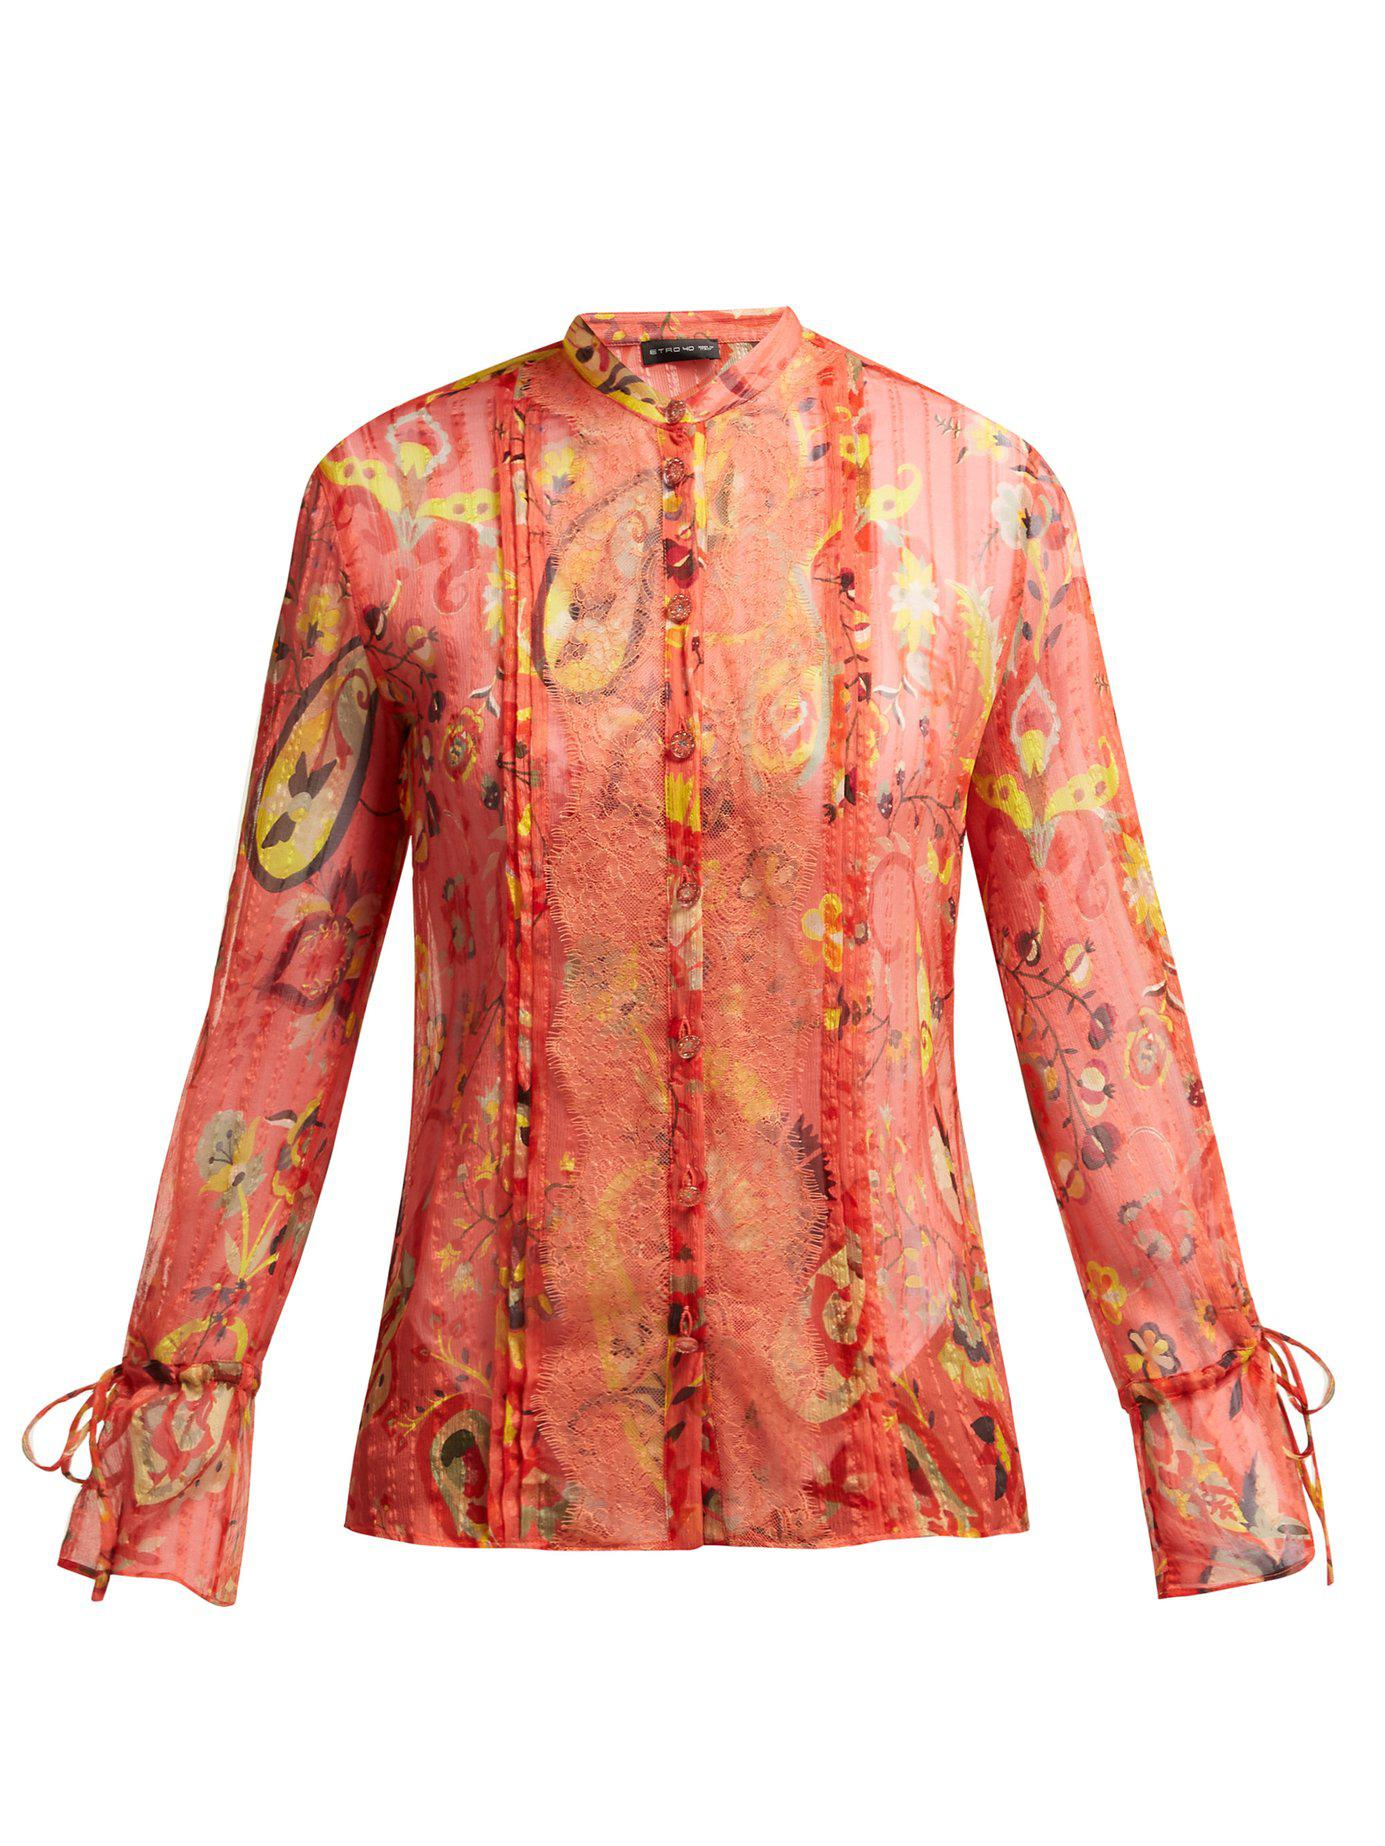 41e0c4f4875929 Lyst - Etro Bahidora Lace Panelled Silk Blouse in Red